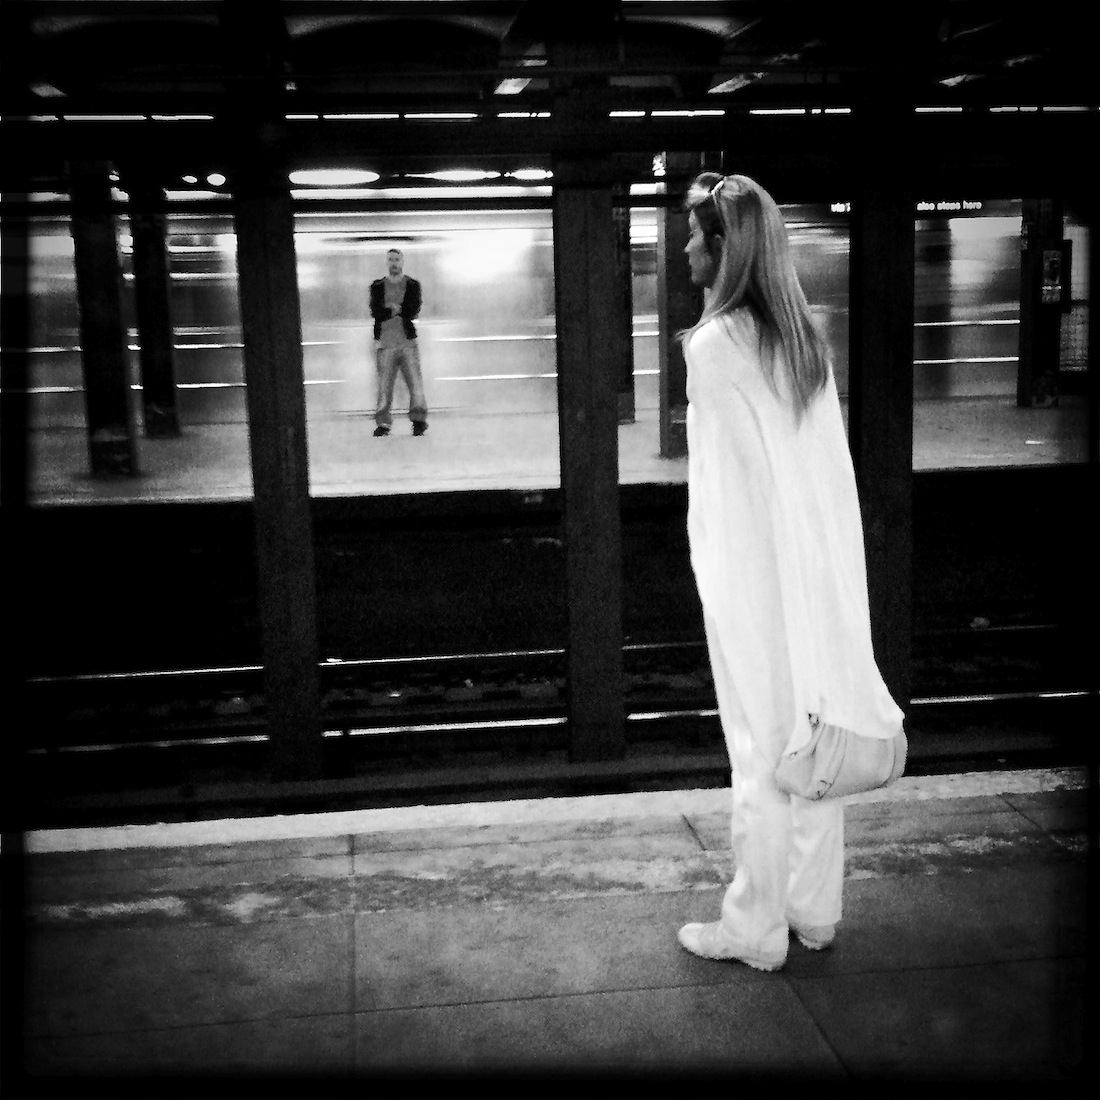 4. Sion Fullana. Ghosts of Subway Past